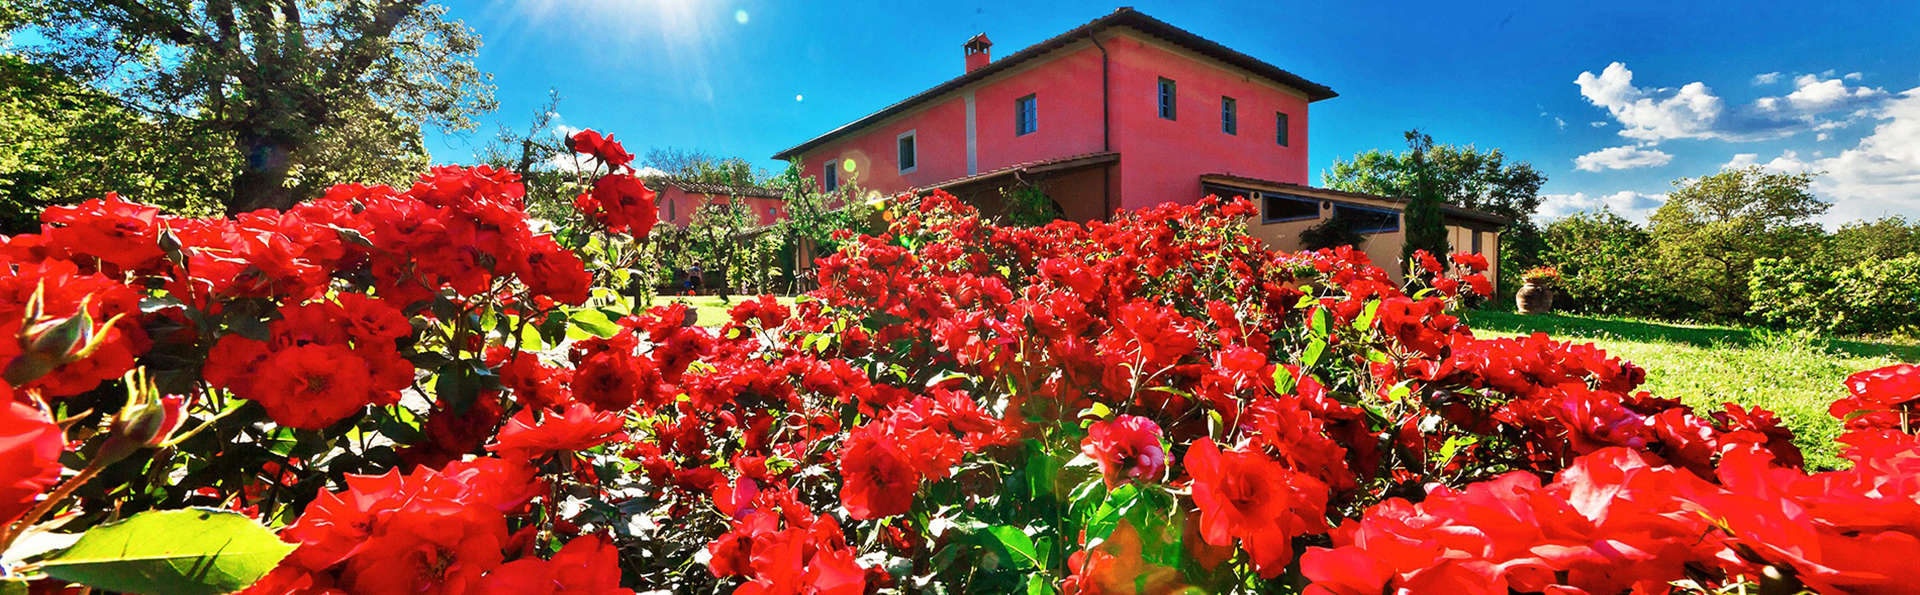 Relais Campiglioni - edit_Main-villa-and-flowers.jpg